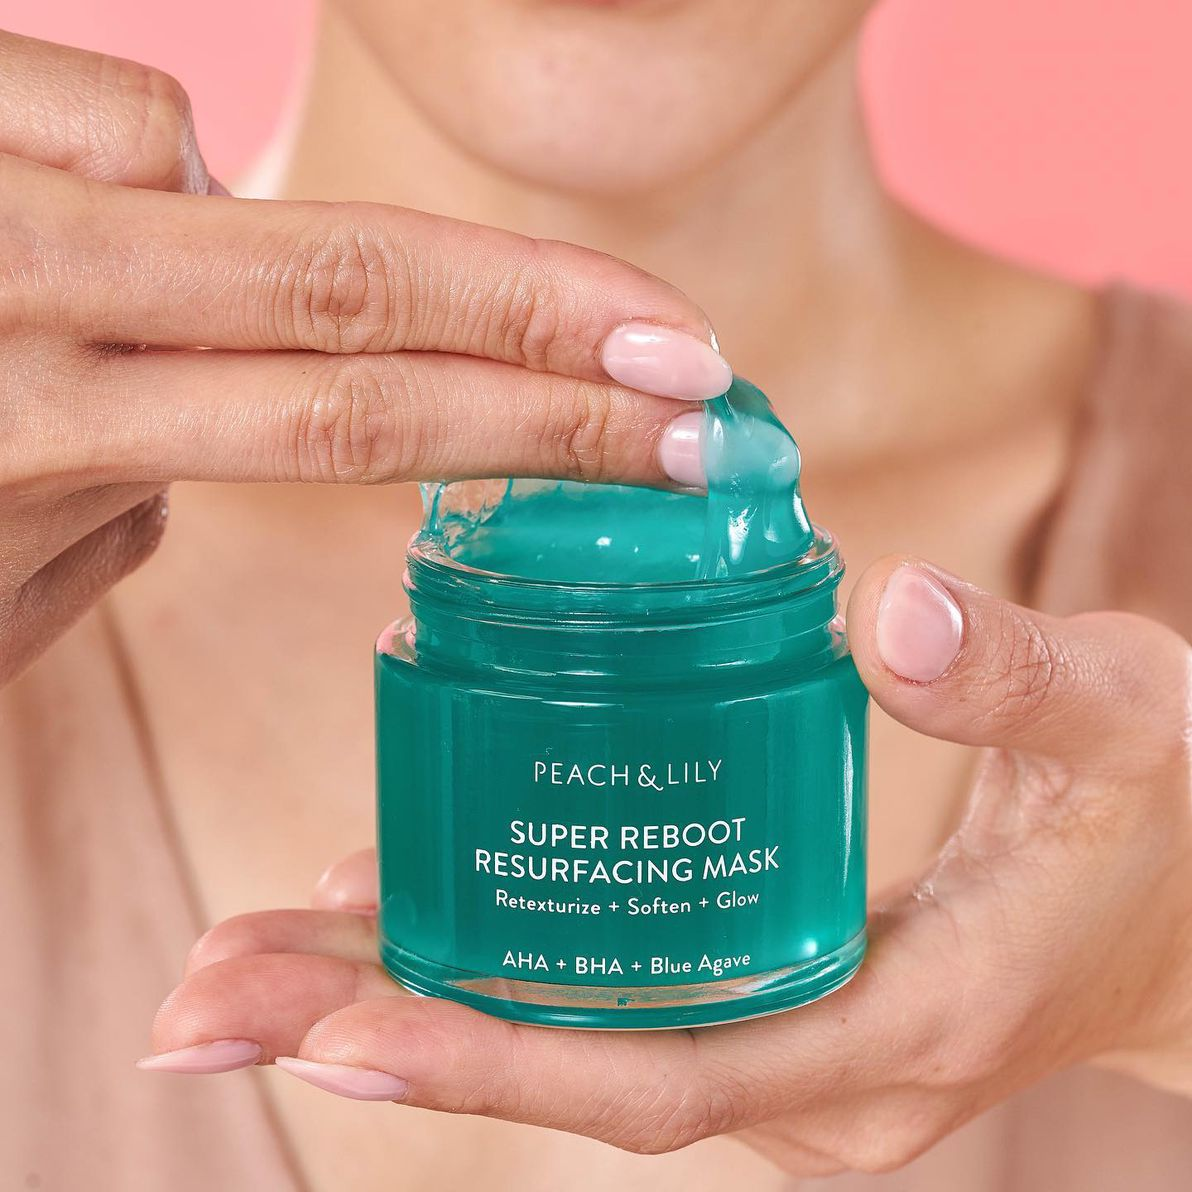 Peach and Lily super reboot resurfacing mask